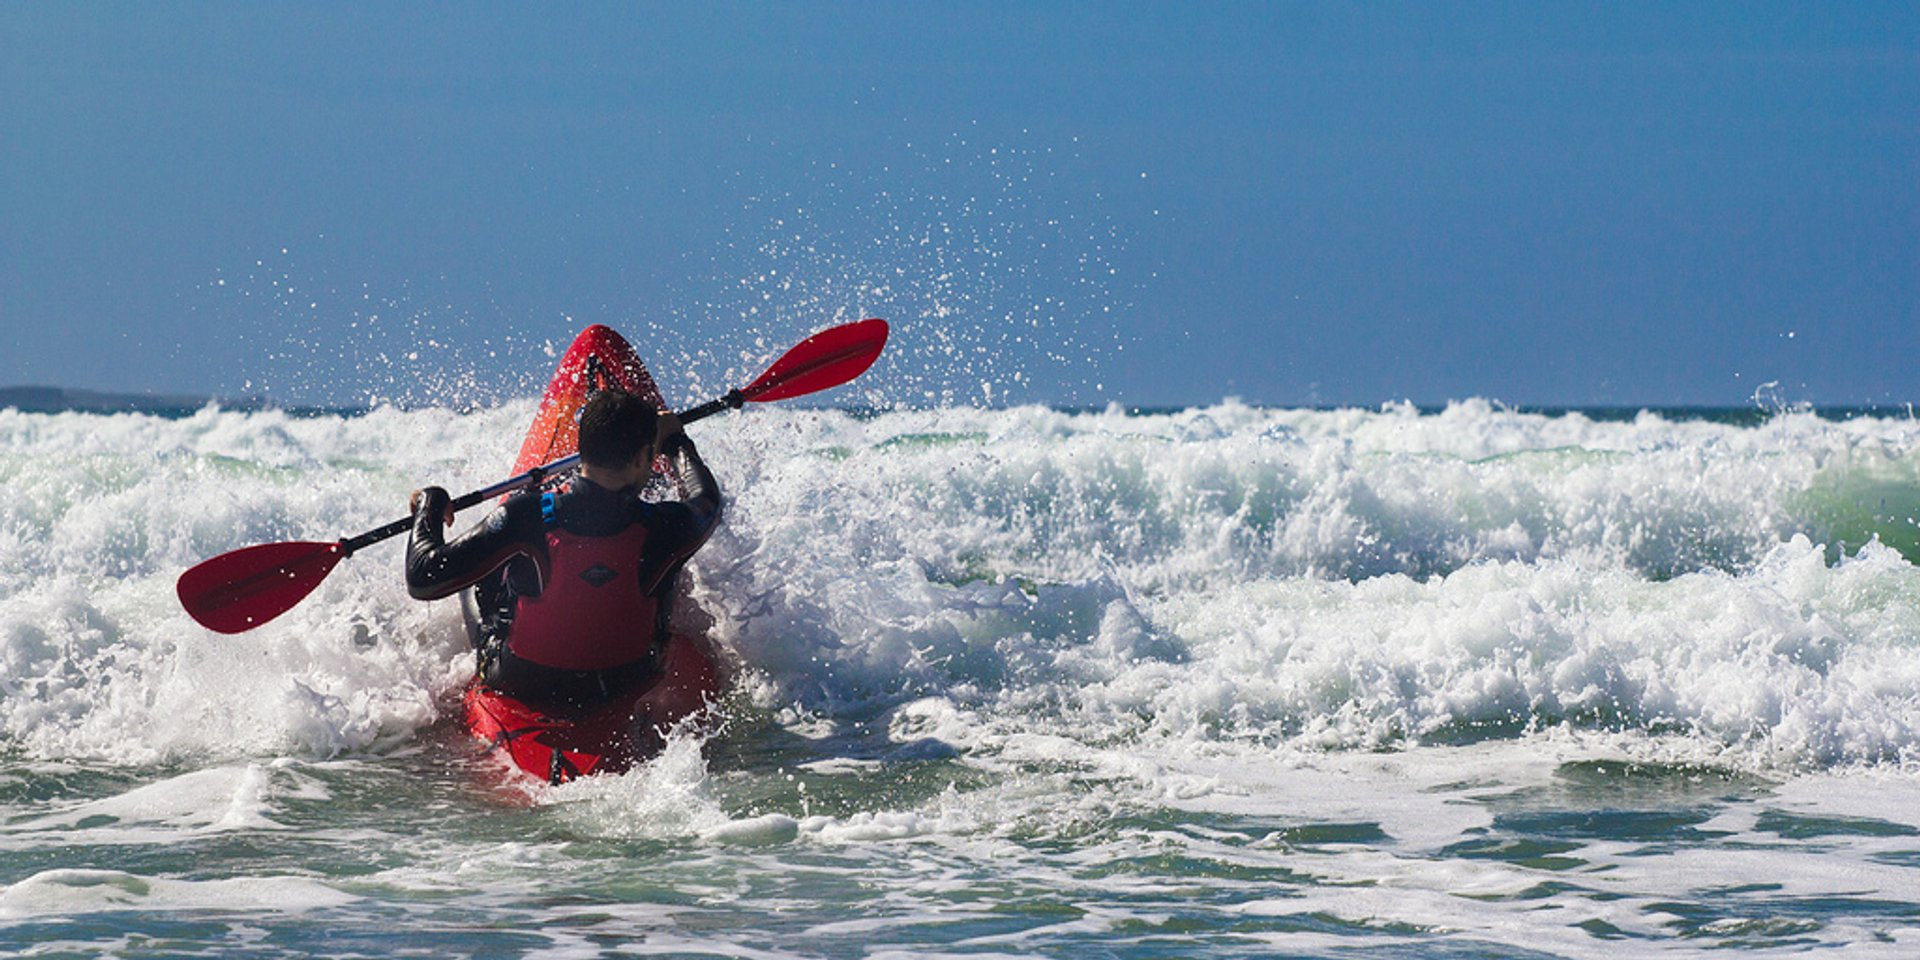 Sea Kayaking in Ireland 2020 - Best Time